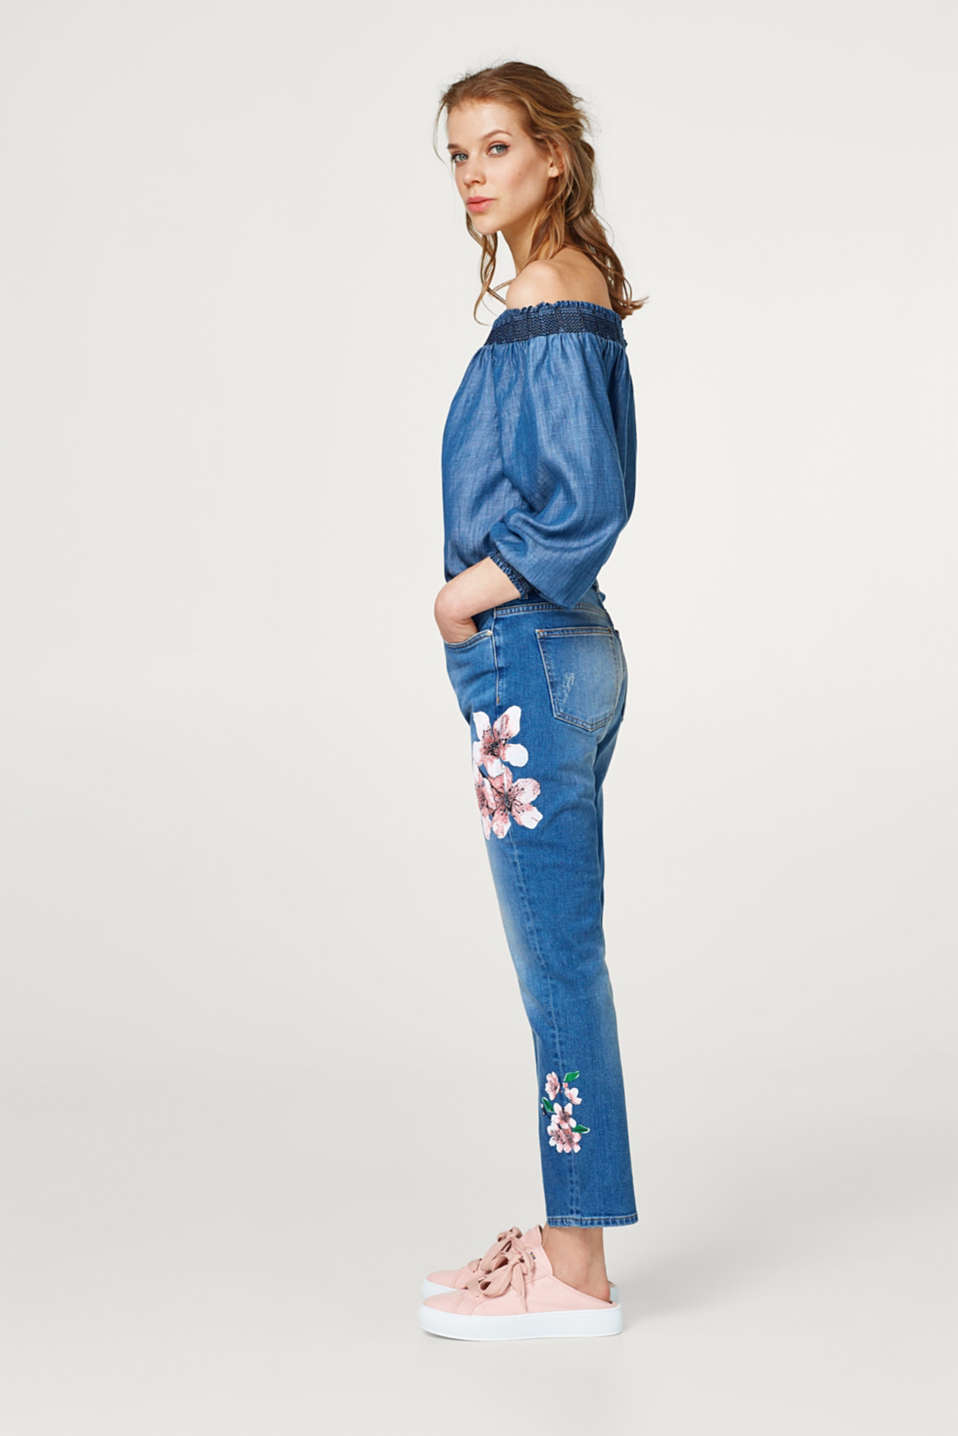 Stretch jeans with bold floral prints